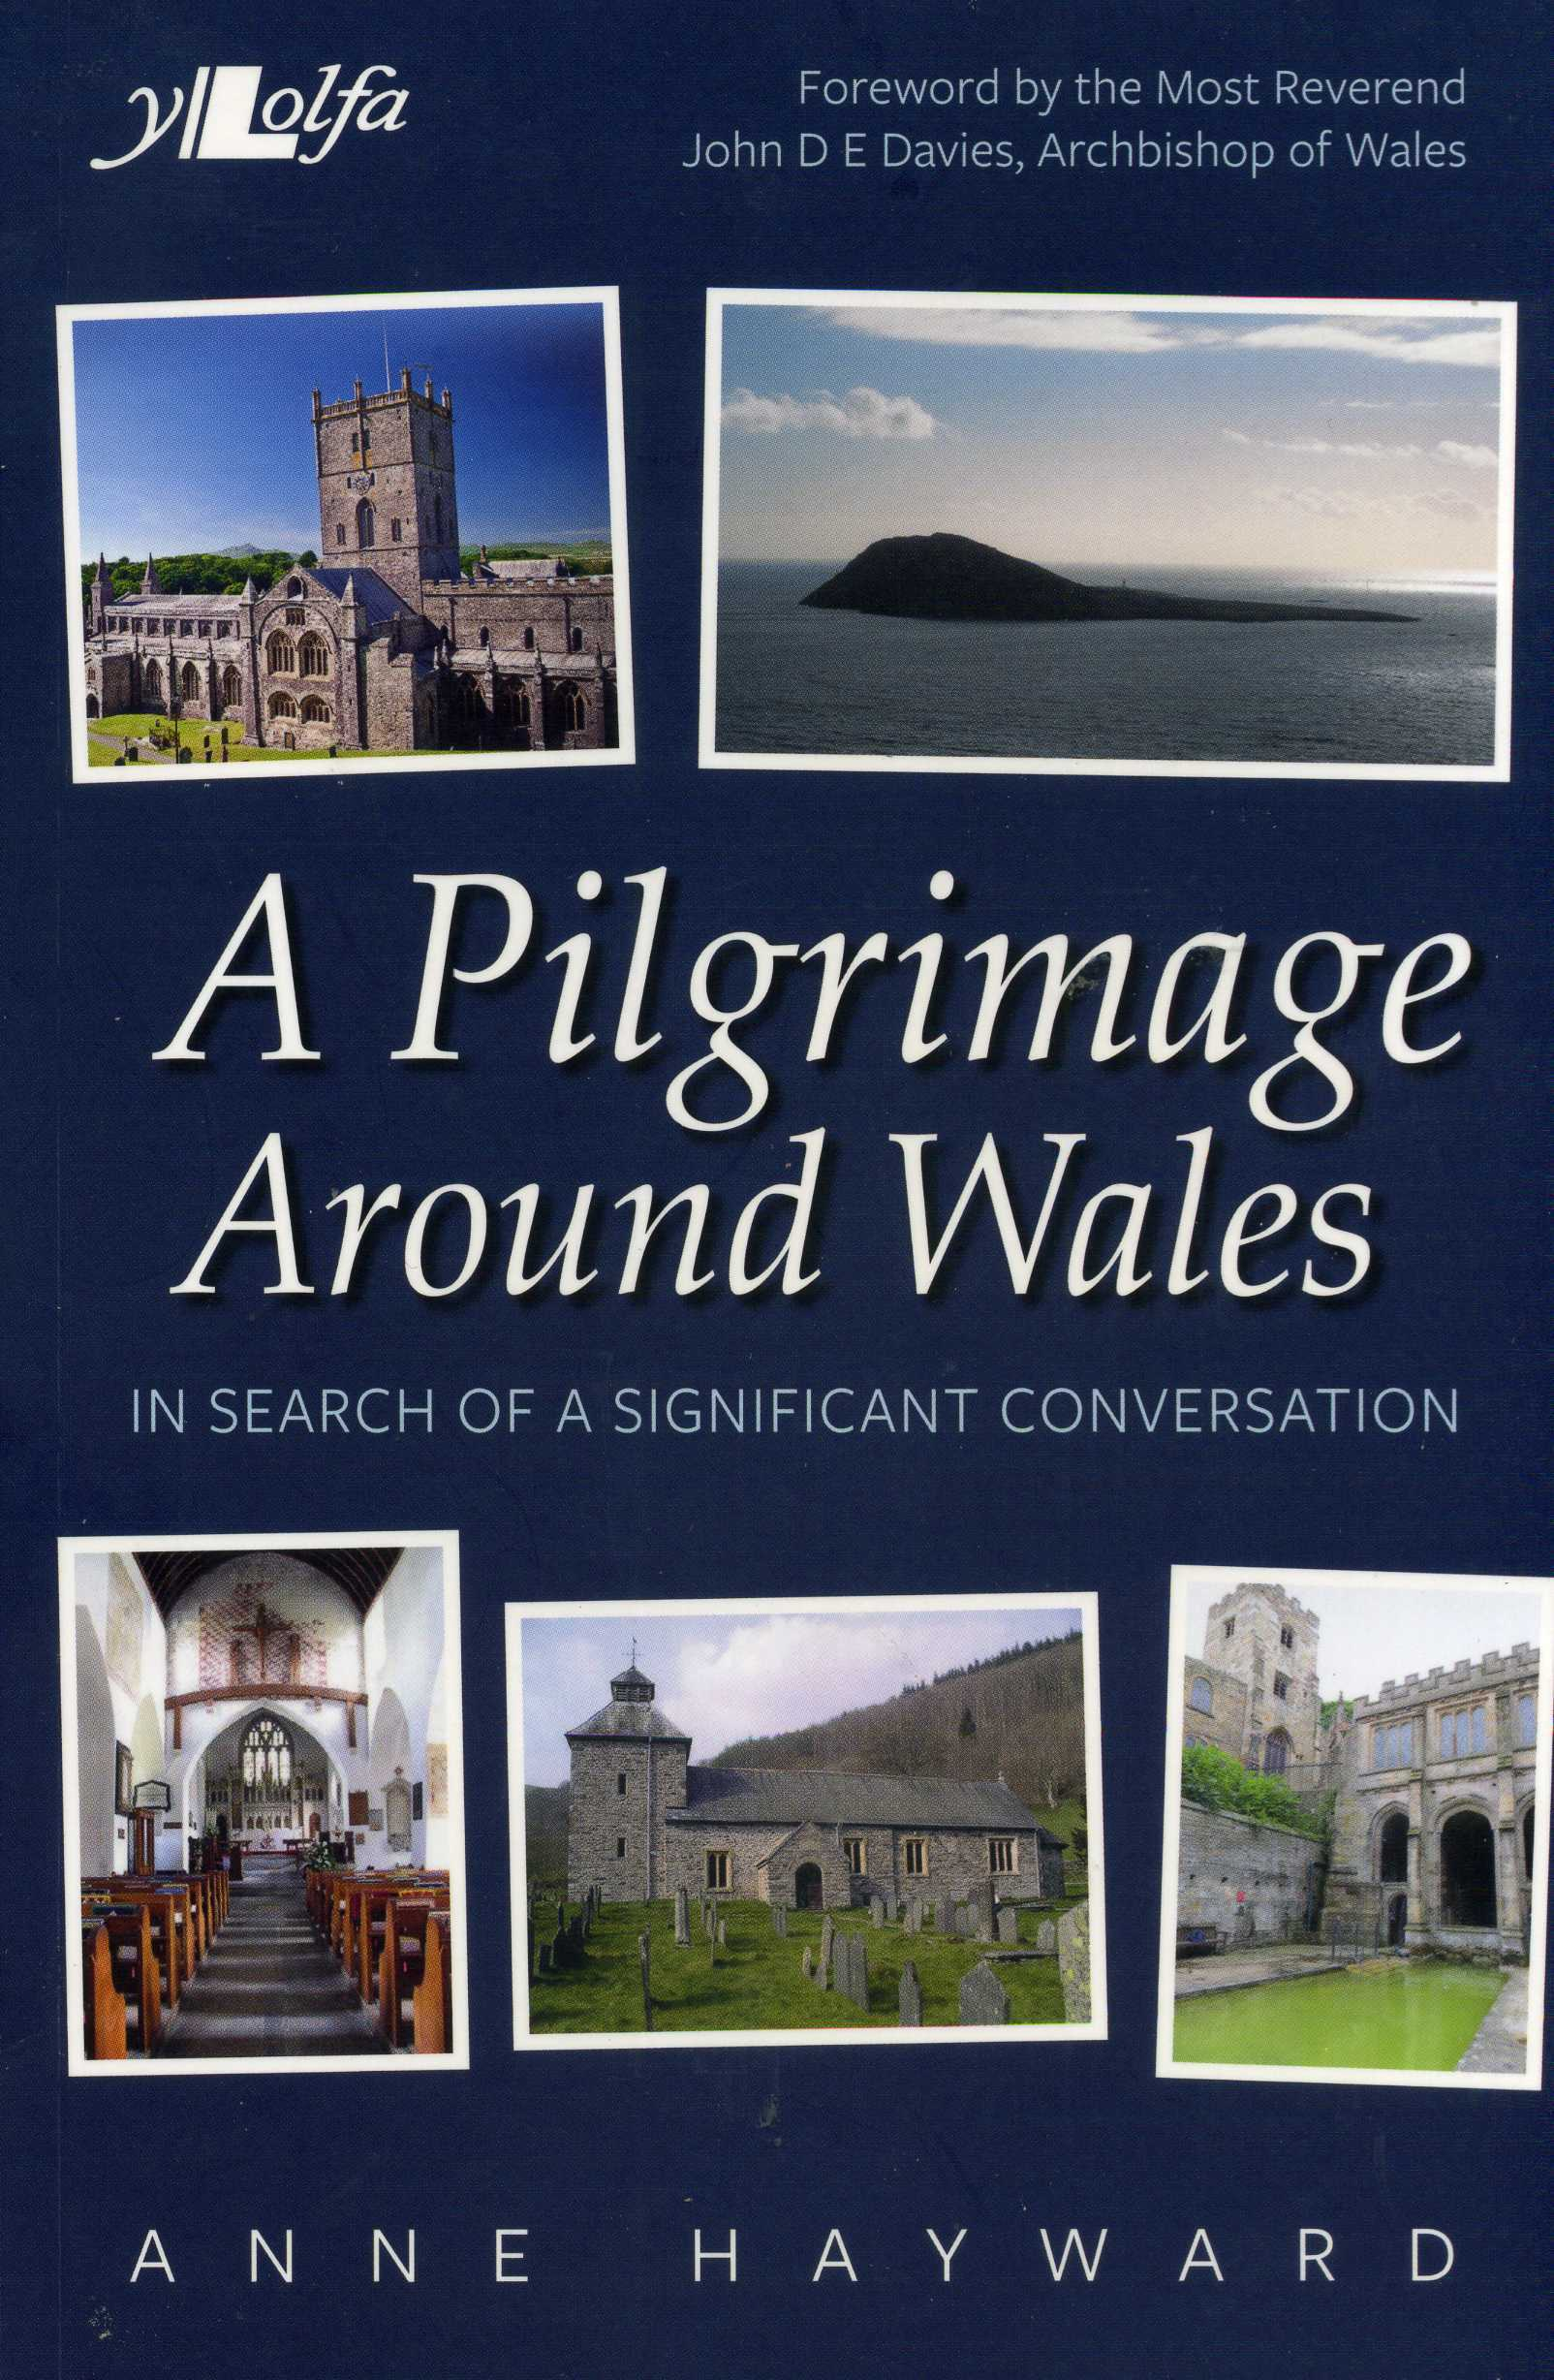 CT LEISURE TIMES: Anne Hayward, A pilgrimage Around Wales